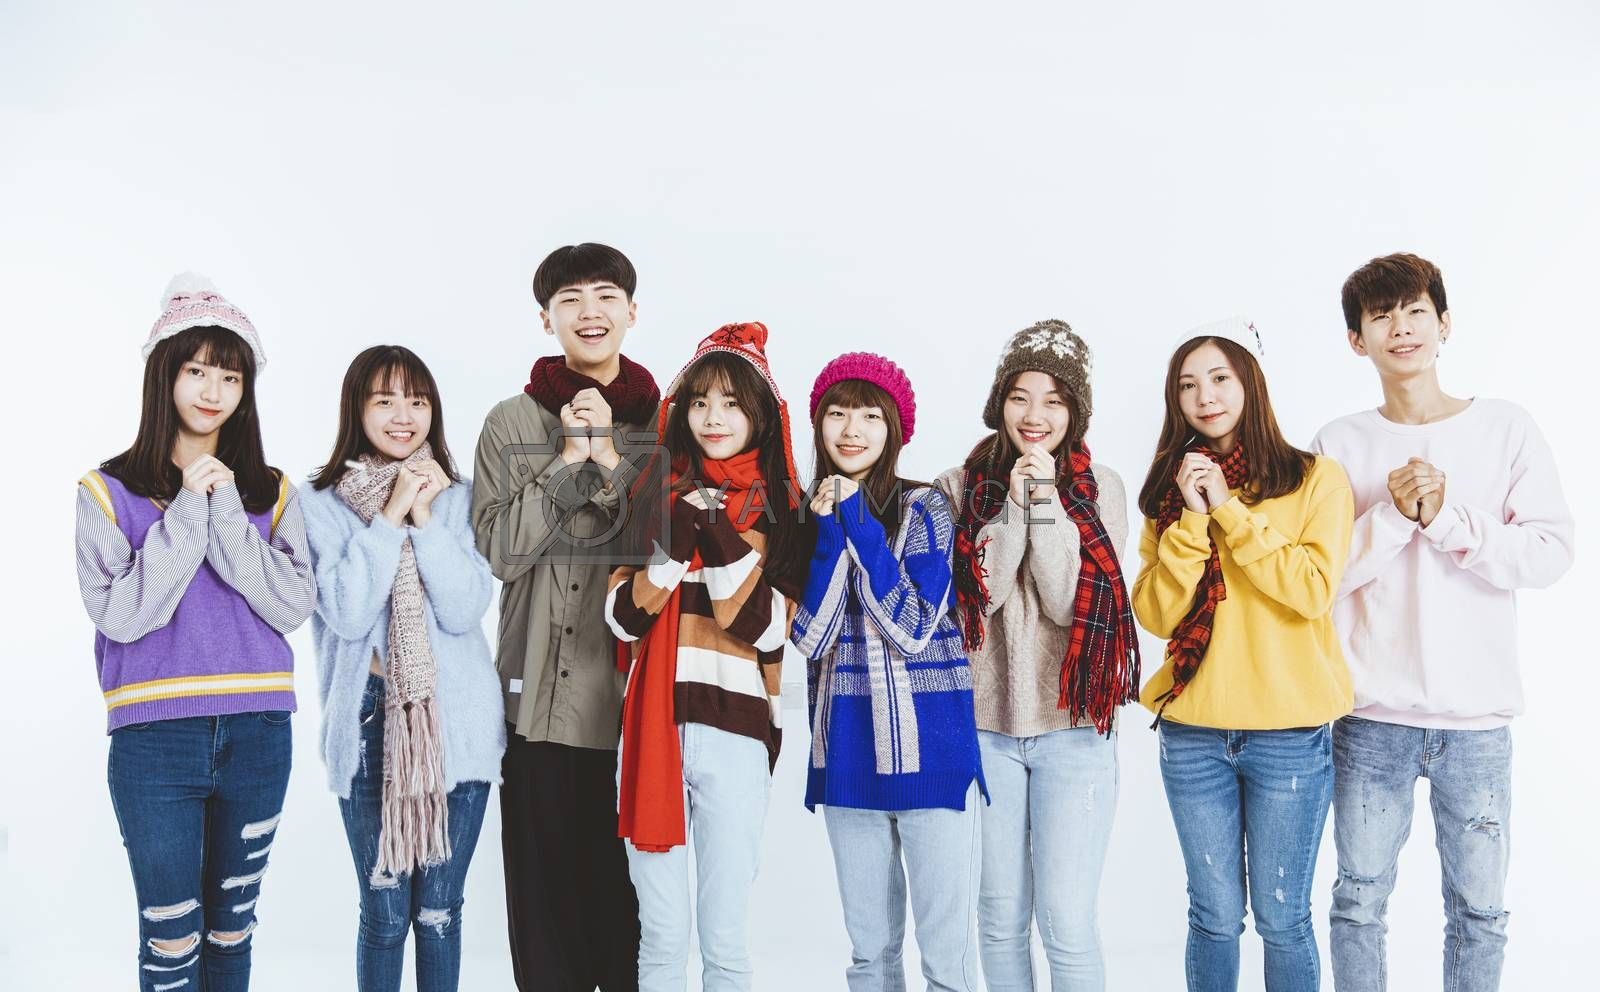 happy asian young people in winter clothes with Congratulations gesture for chinese new year